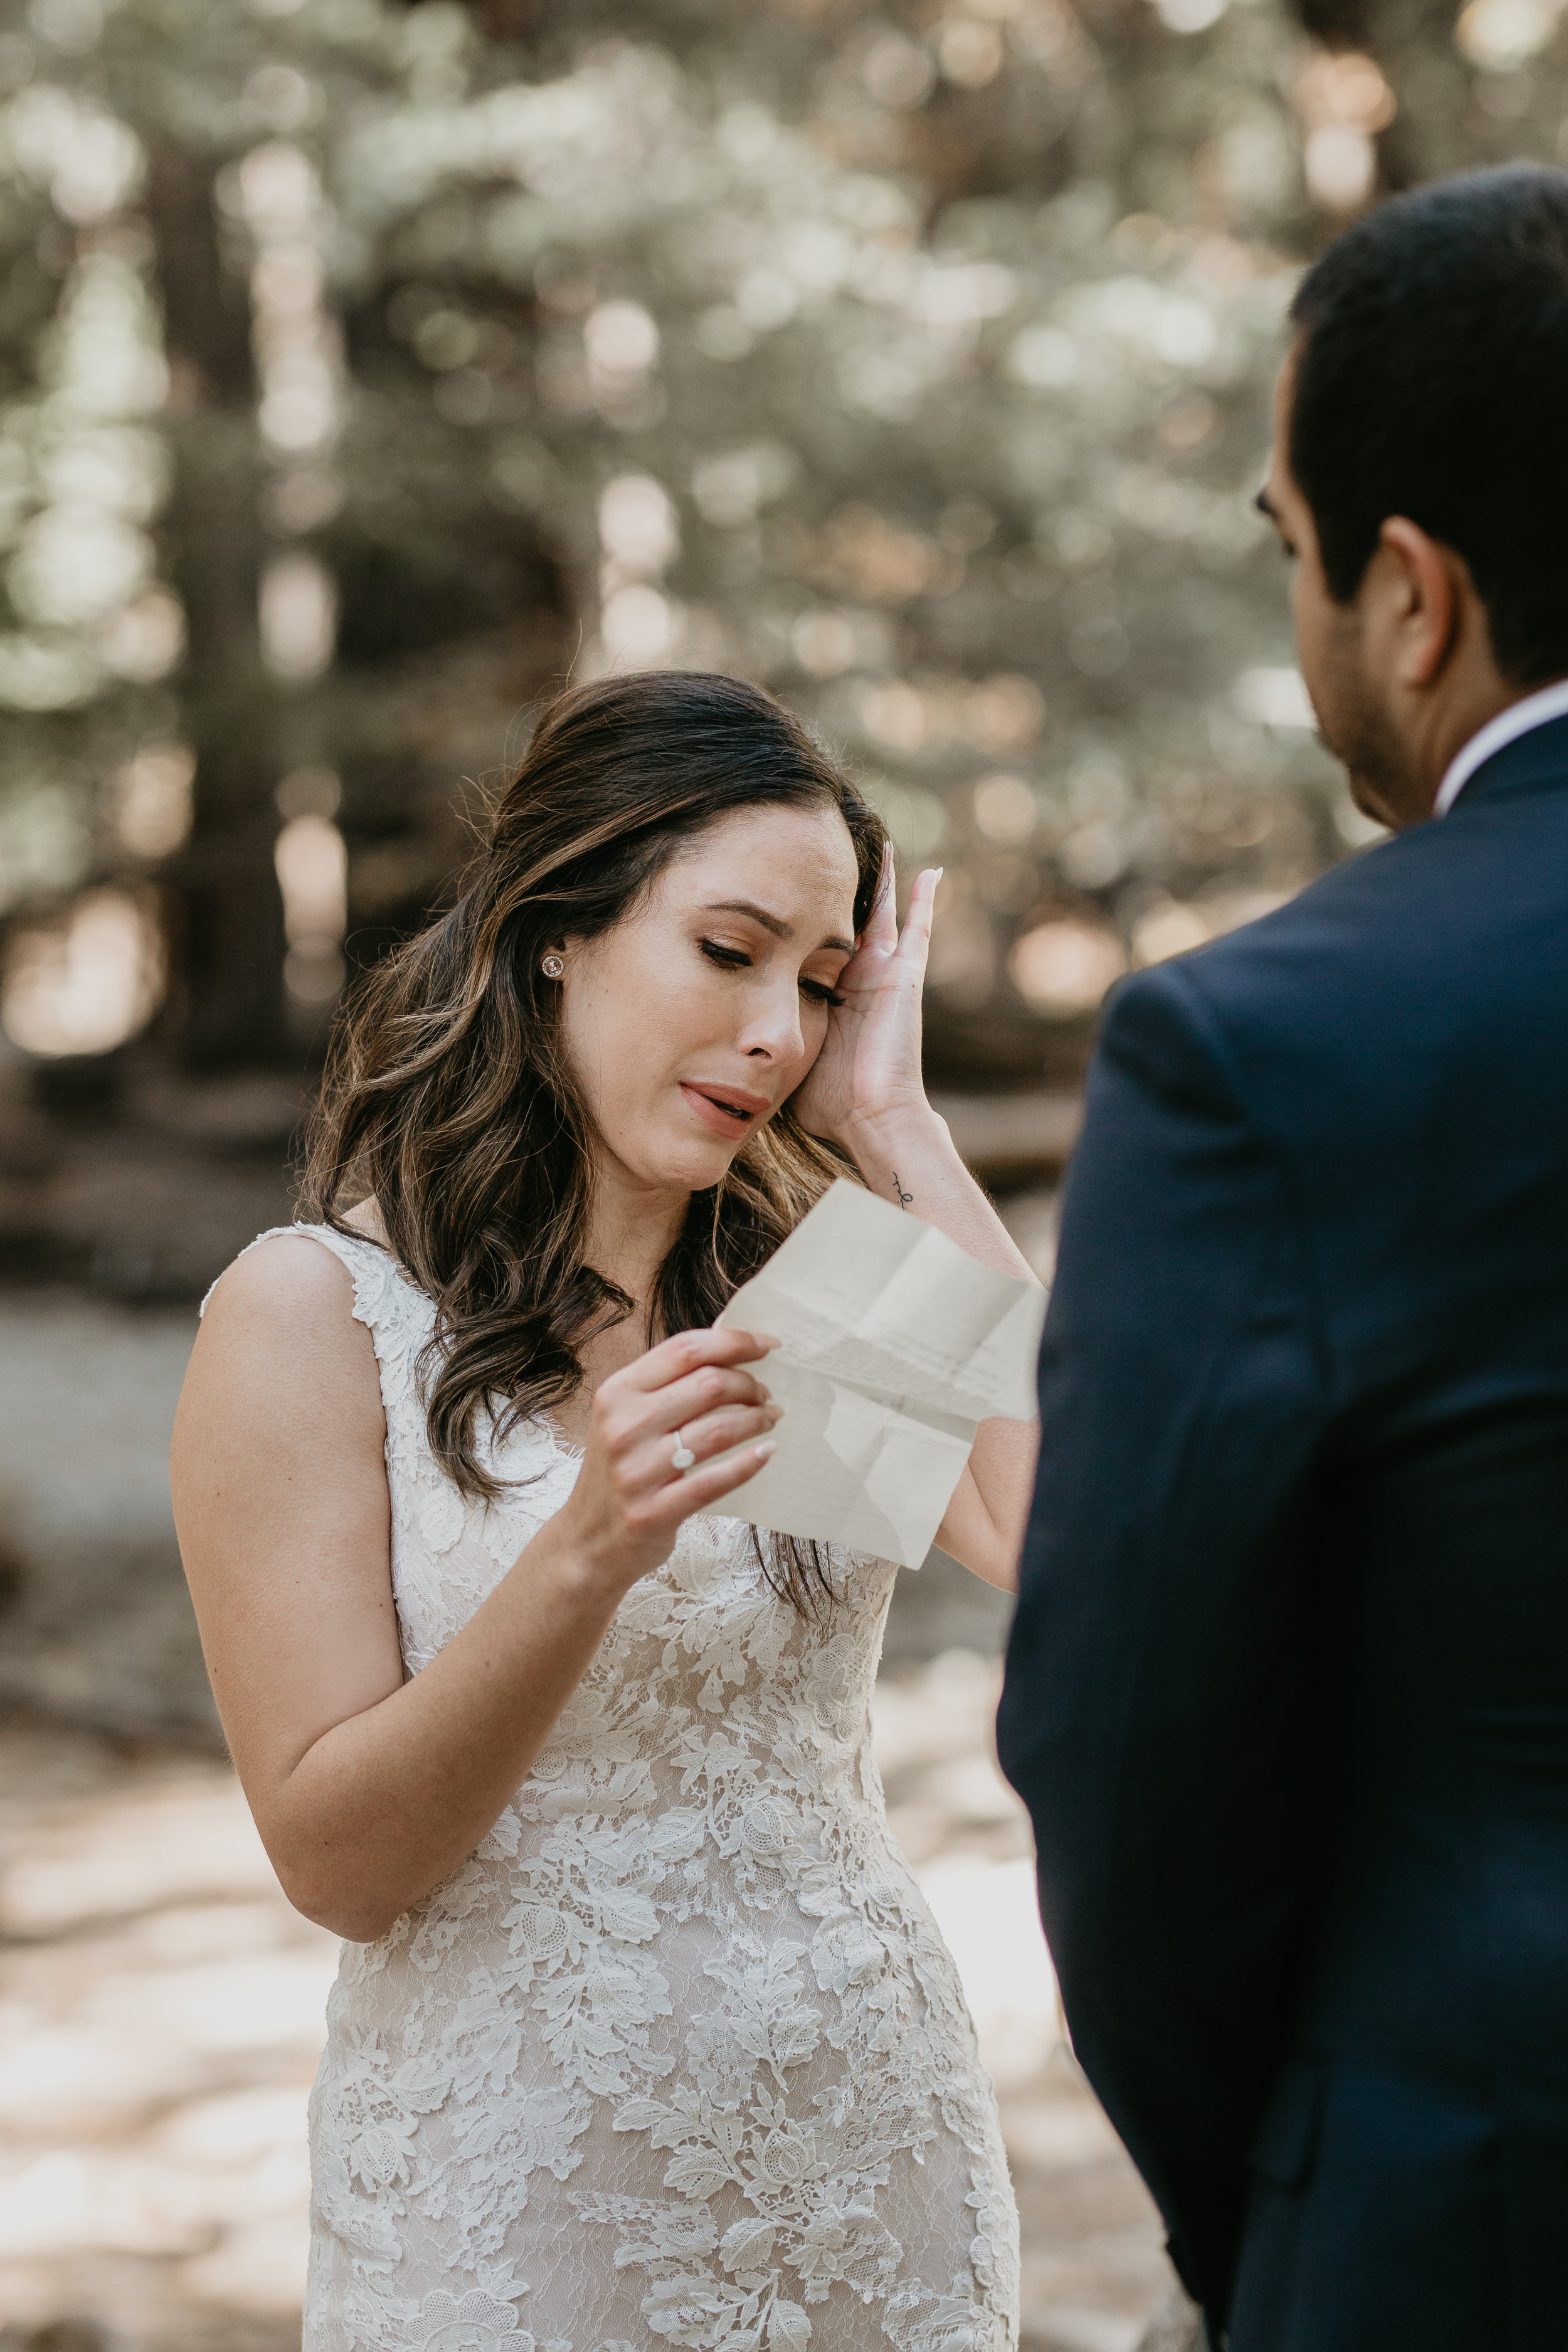 nicole-daacke-photography-intimate-elopement-wedding-yosemite-national-park-california-taft-point-sunset-photos-yosemite-valley-tunnel-view-first-look-sunrise-golden-granite-hiking-adventure-wedding-adventurous-elopement-photographer-49.jpg